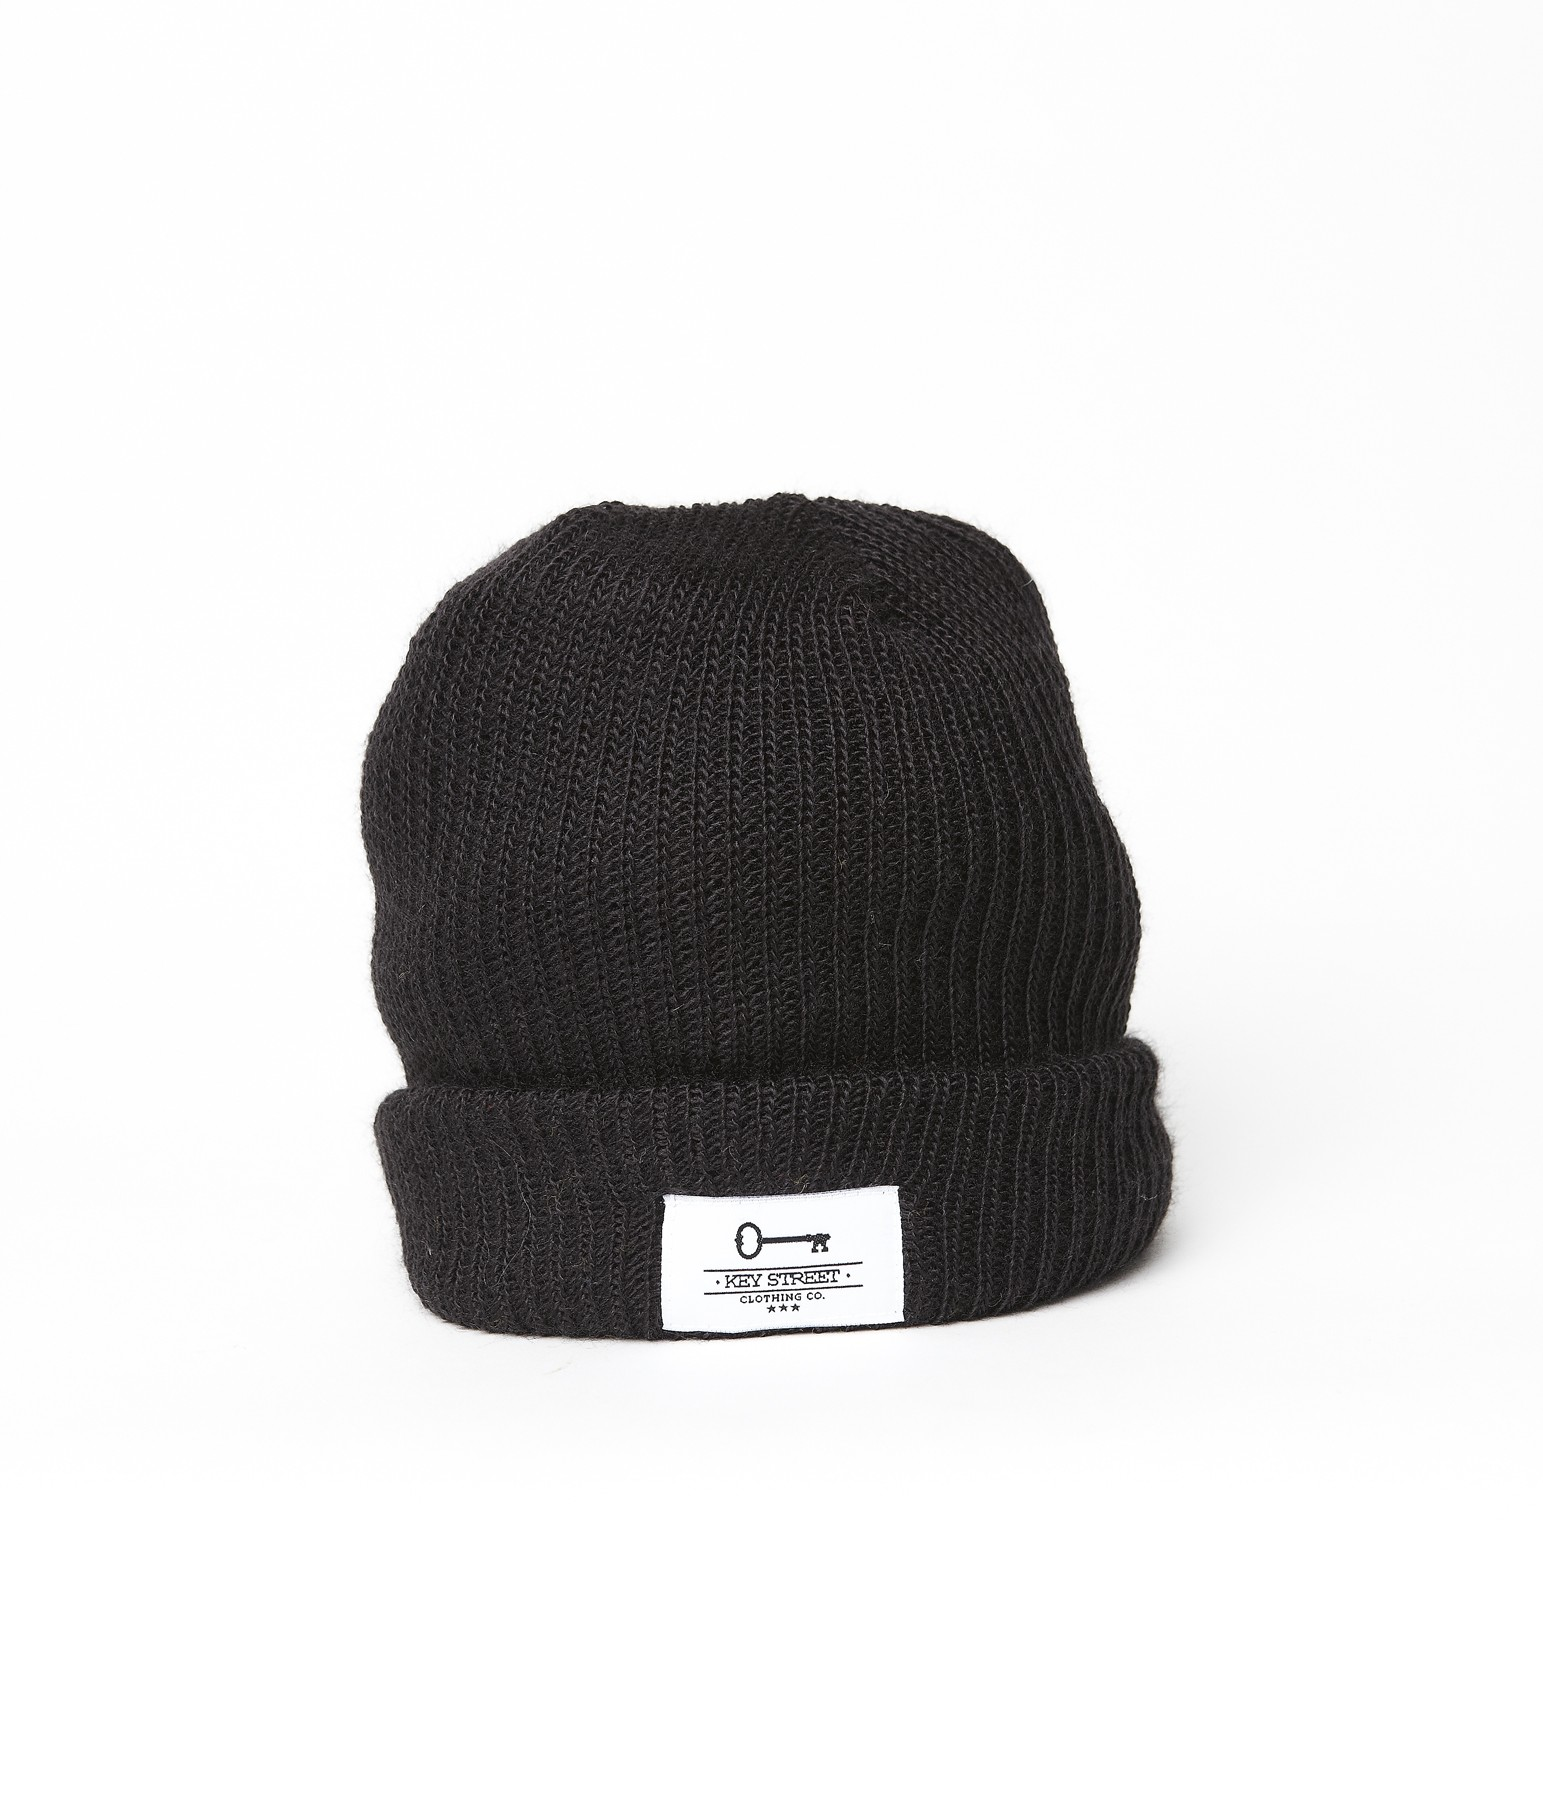 Patch Fishermans Beanie - Black